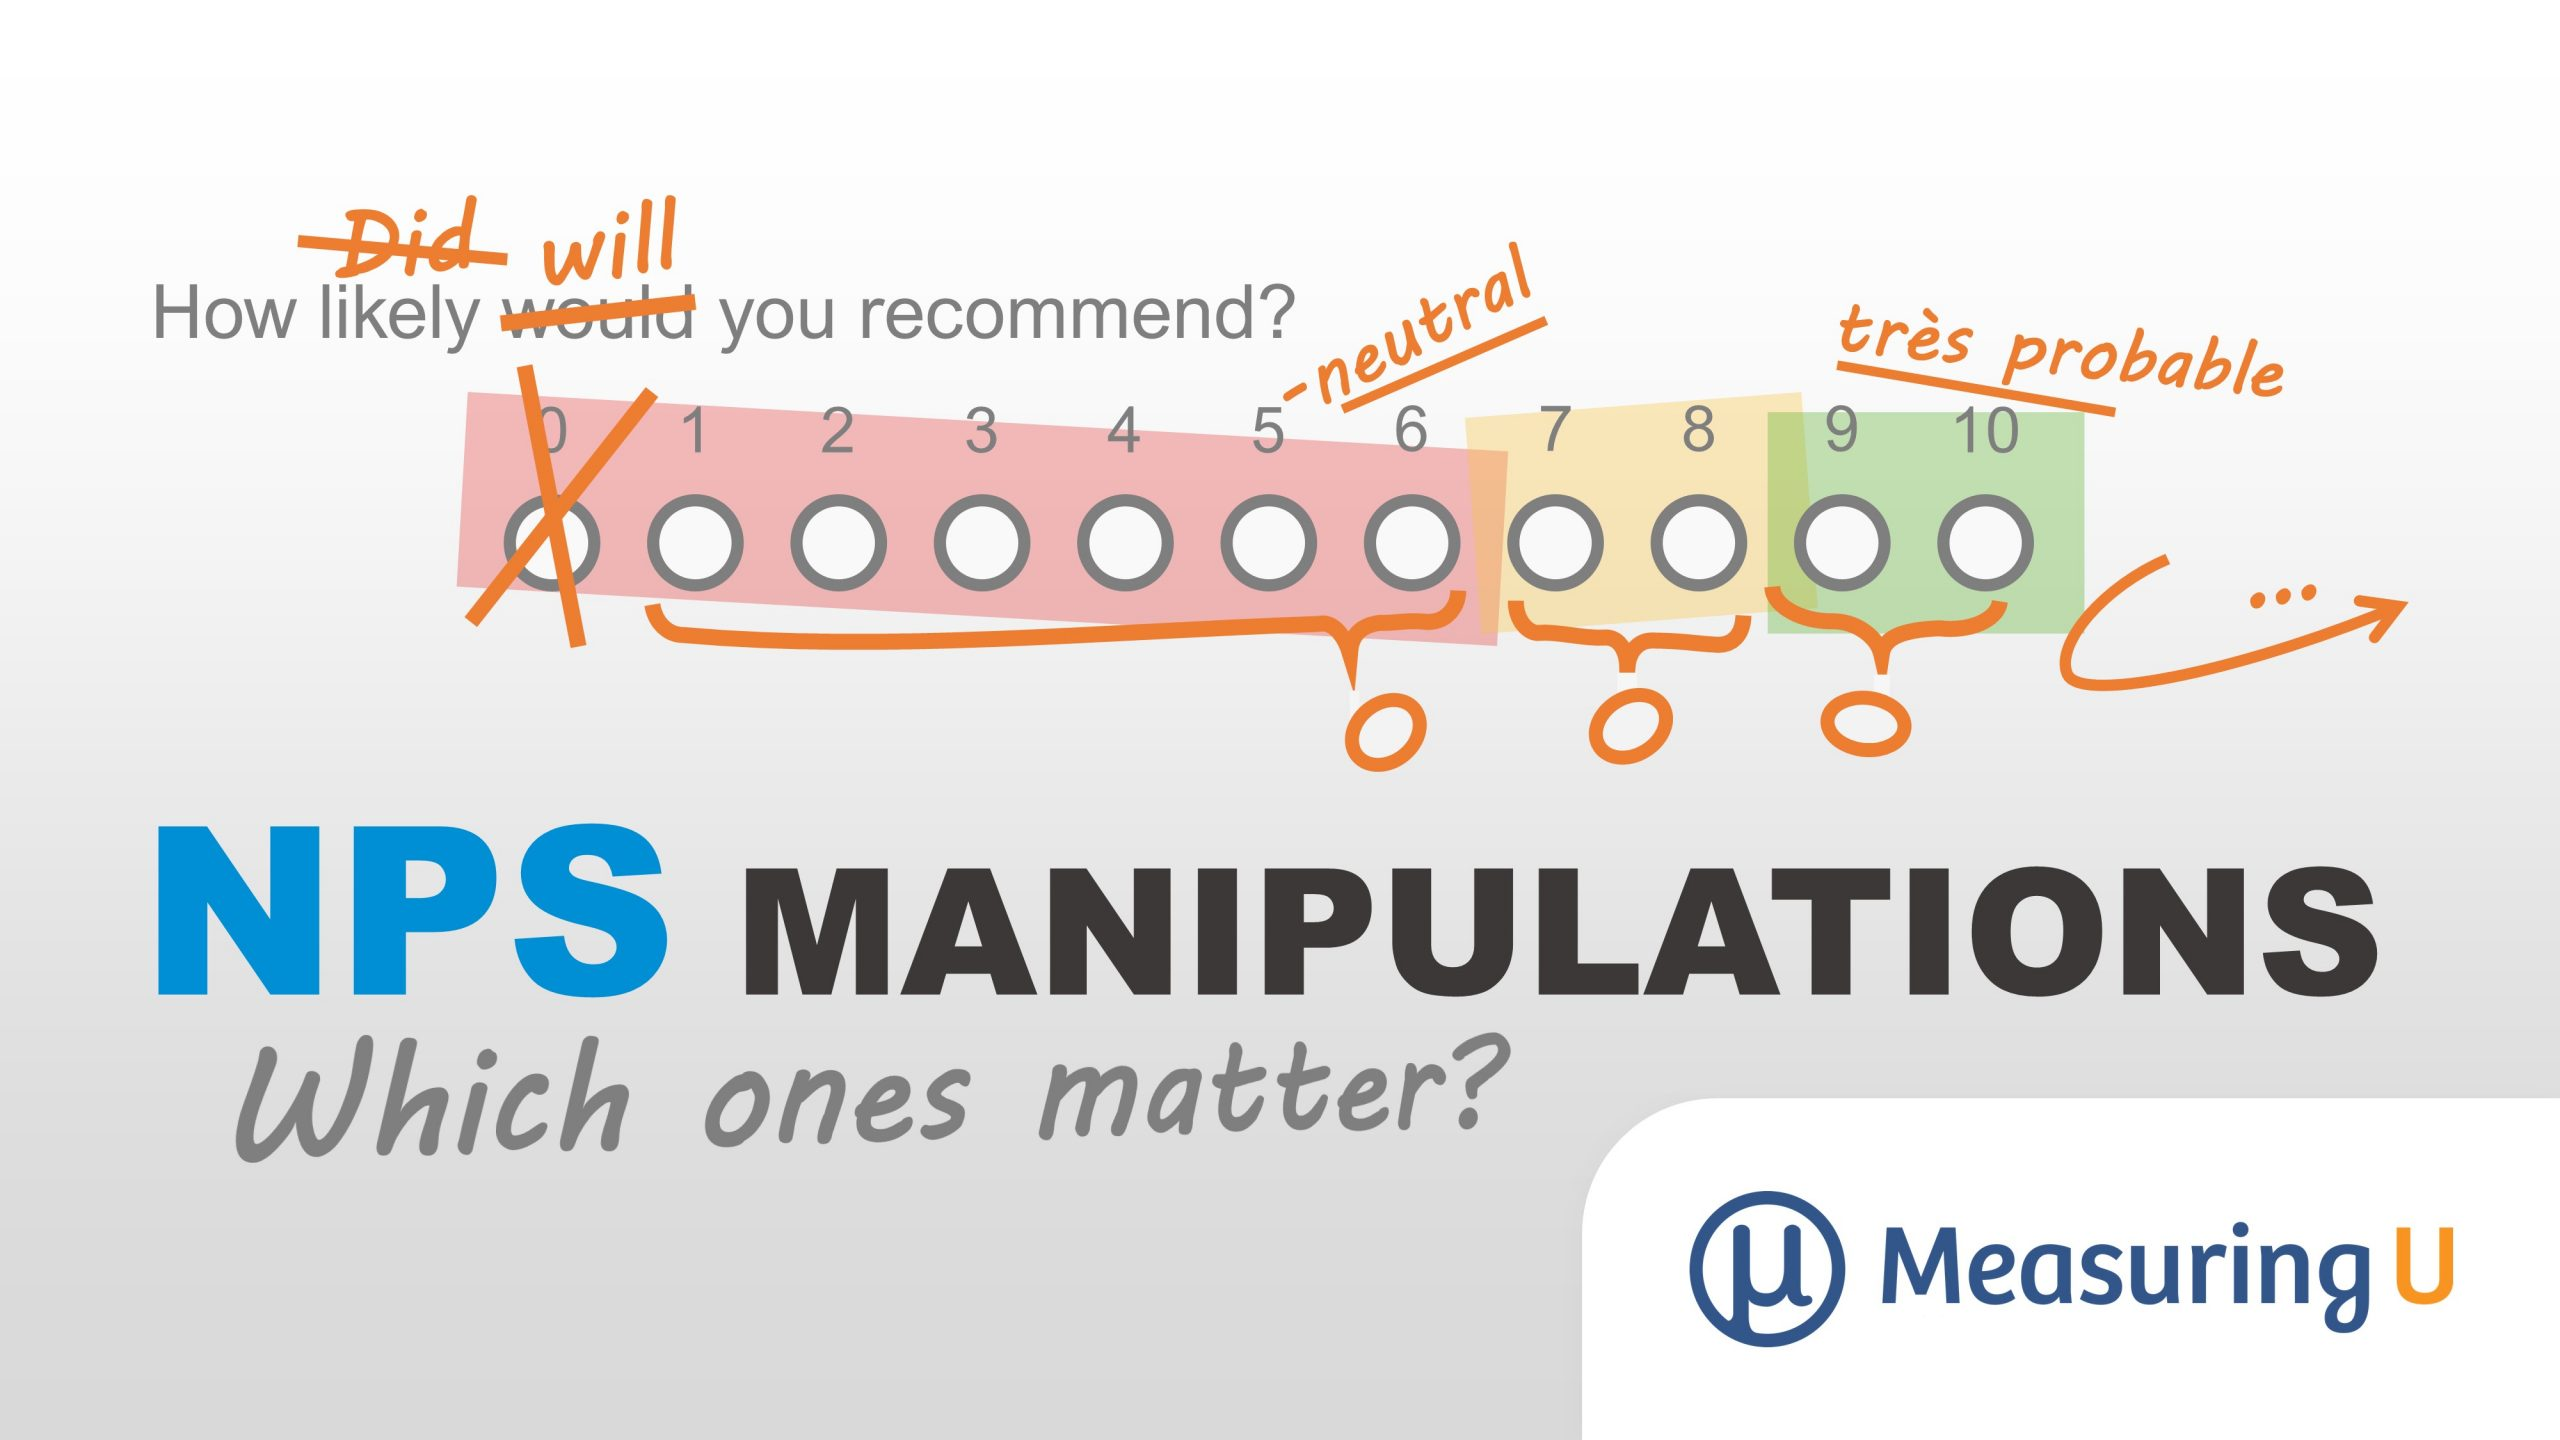 8 Manipulations of the Net Promoter Score: Which Ones Matter?